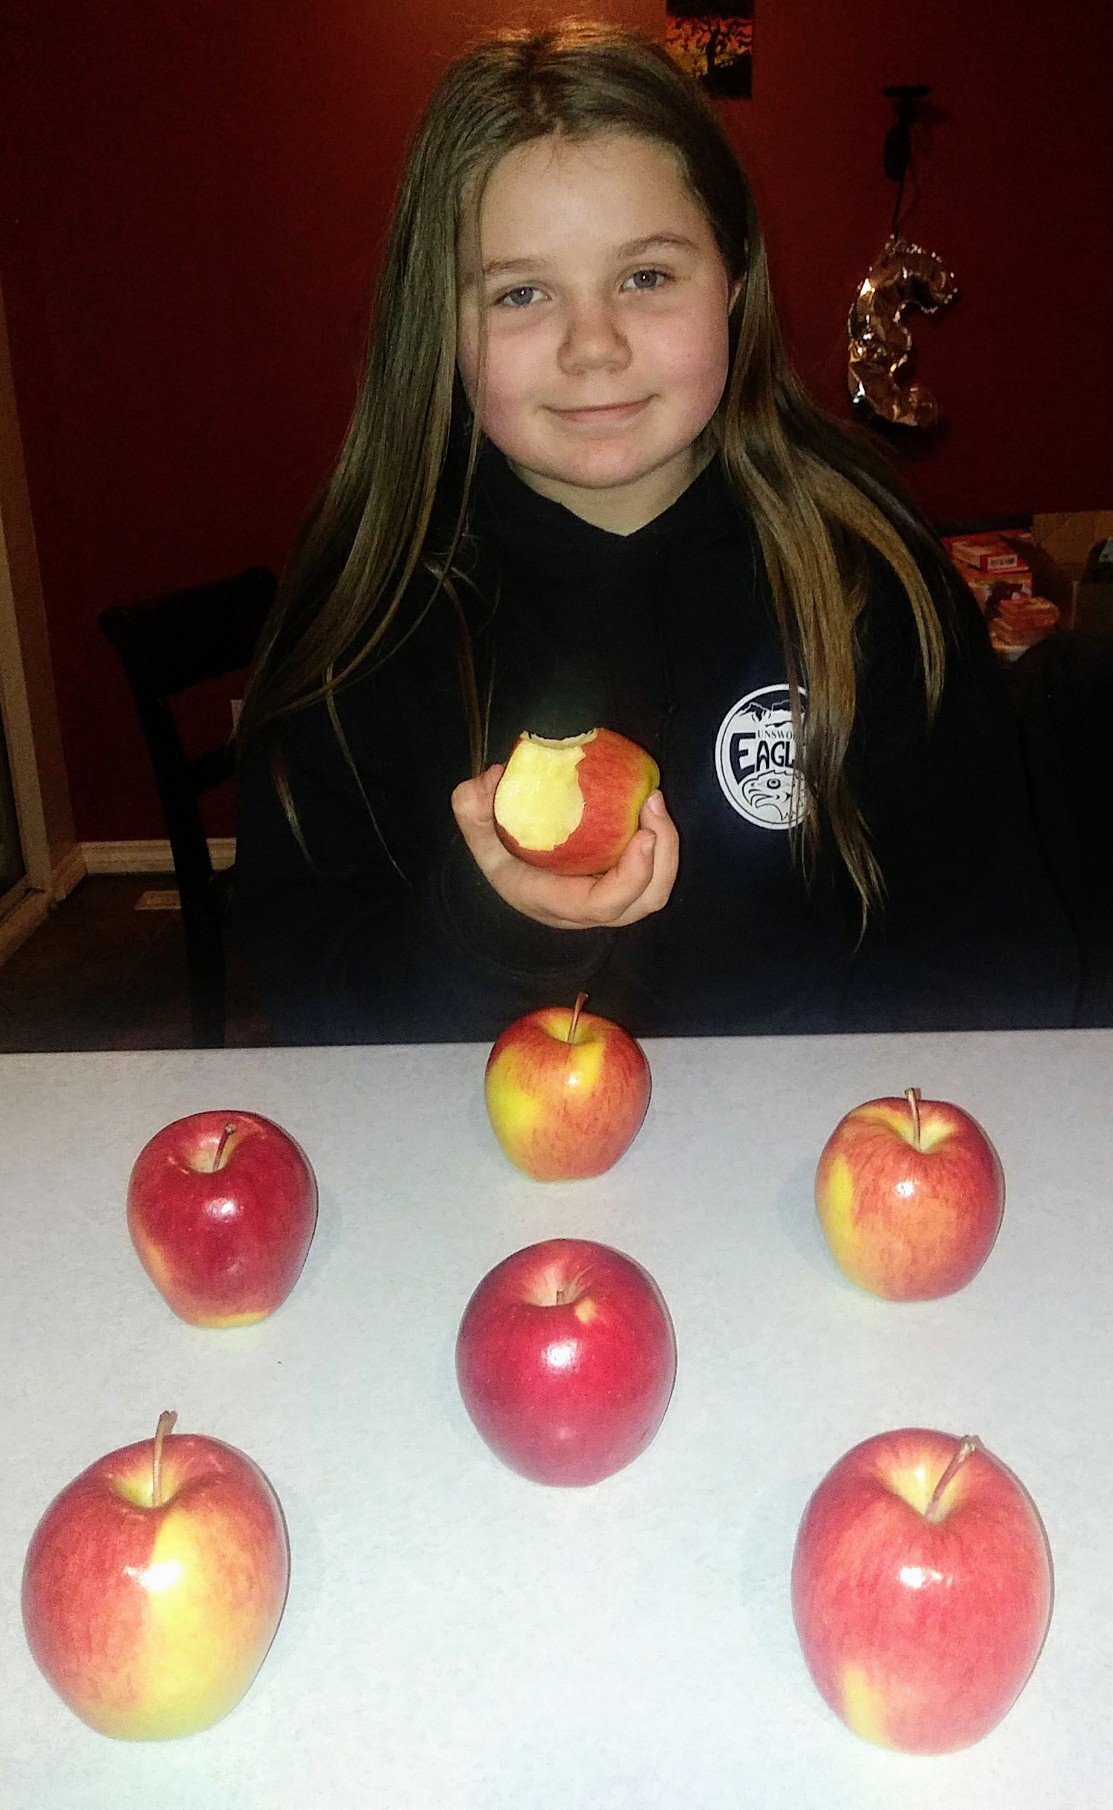 my daughter sage enjoying ambrosia apples